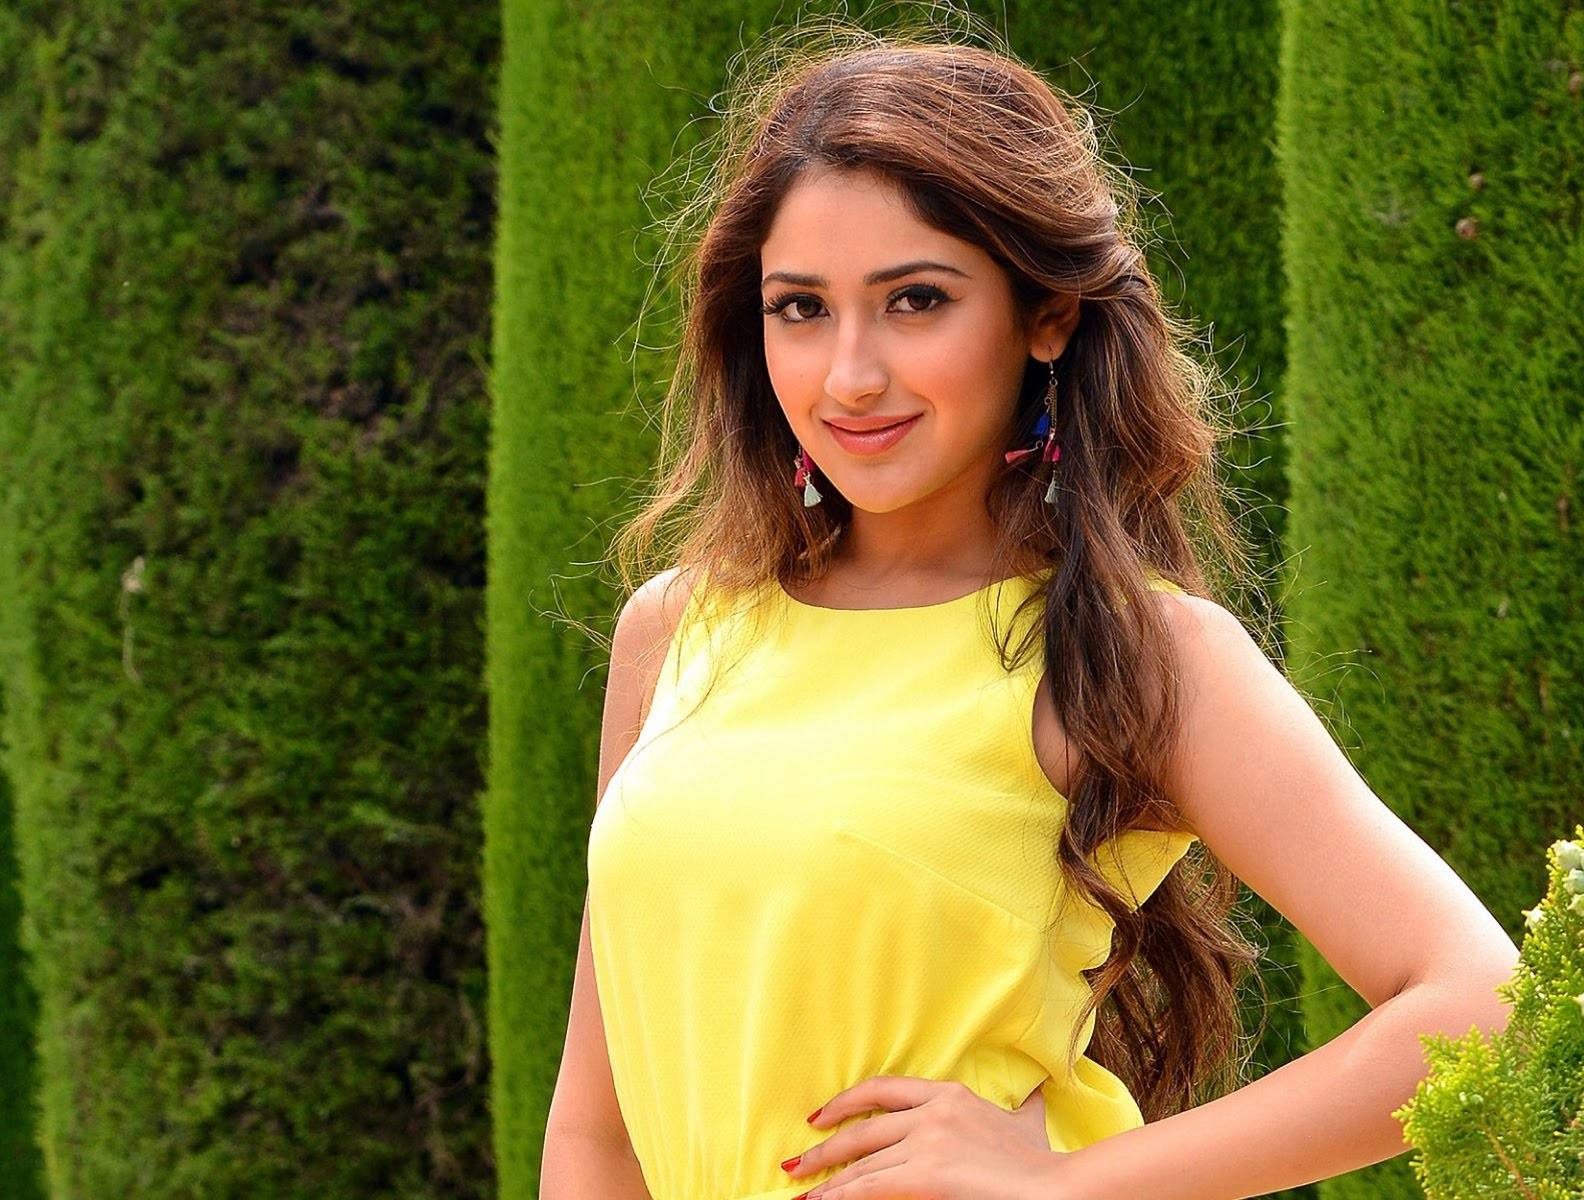 Sayesha Saigal Hot Wallpapers And Photos In Bikini